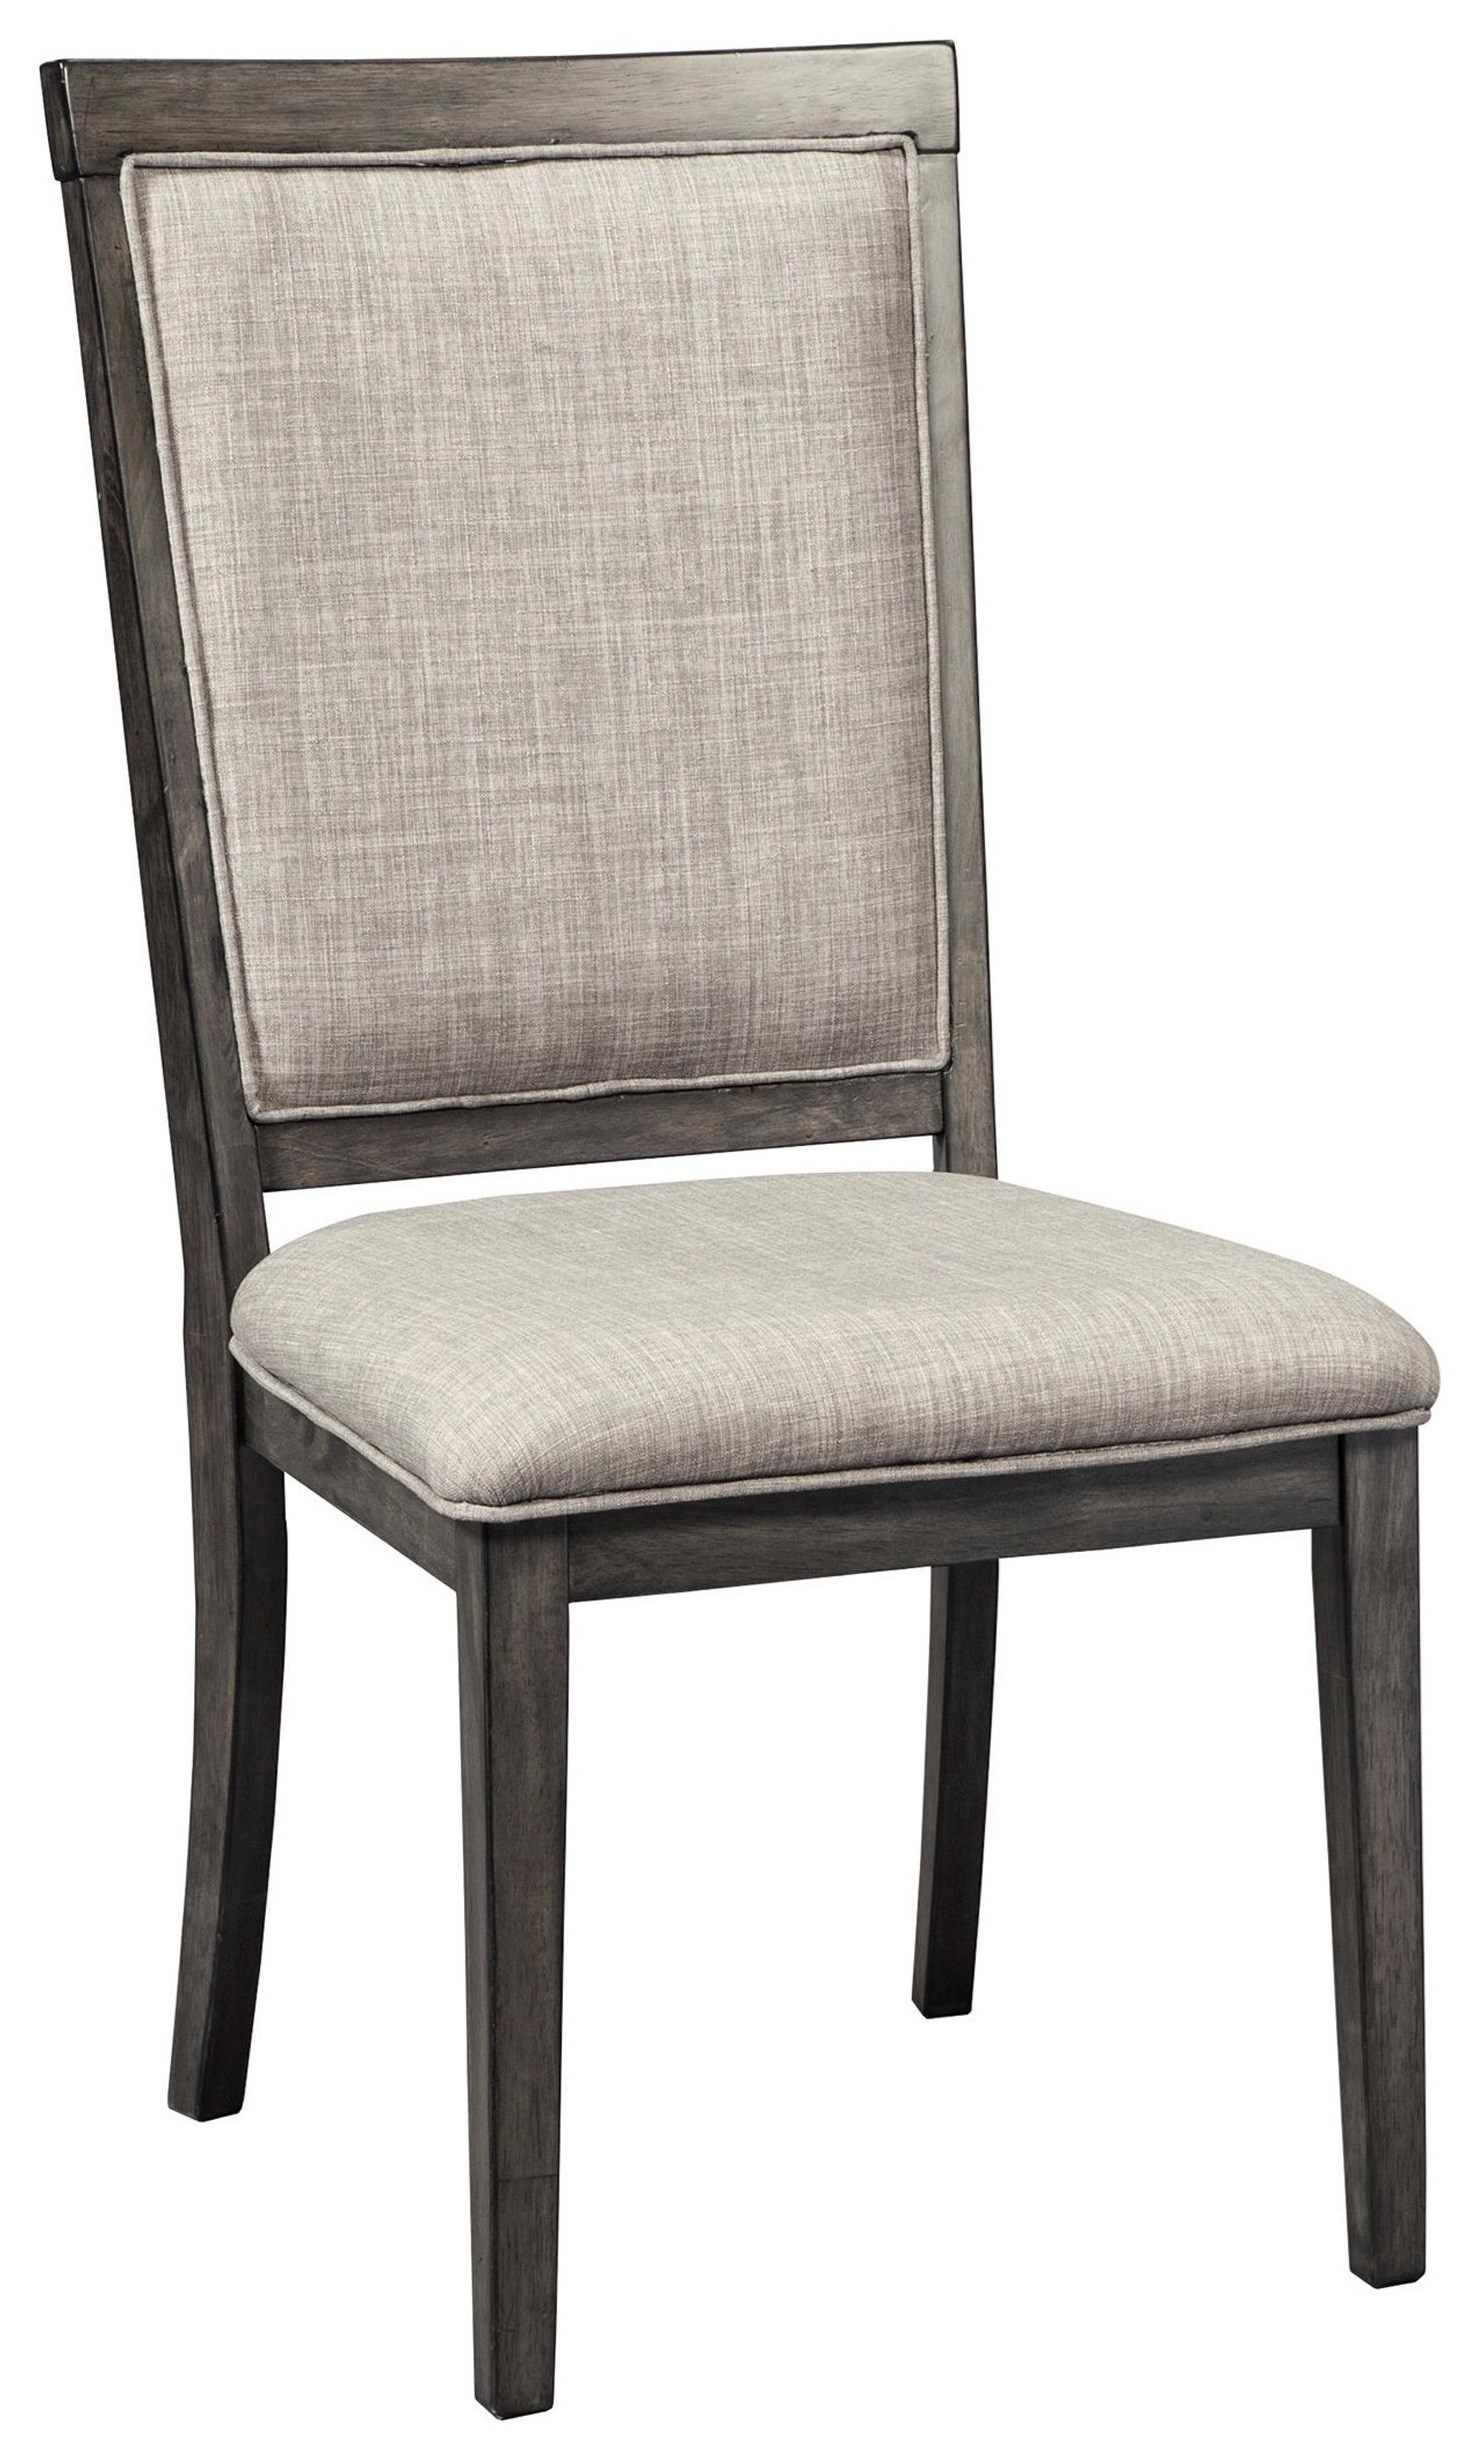 Chloe Upholstered Side Chair at Ruby Gordon Home